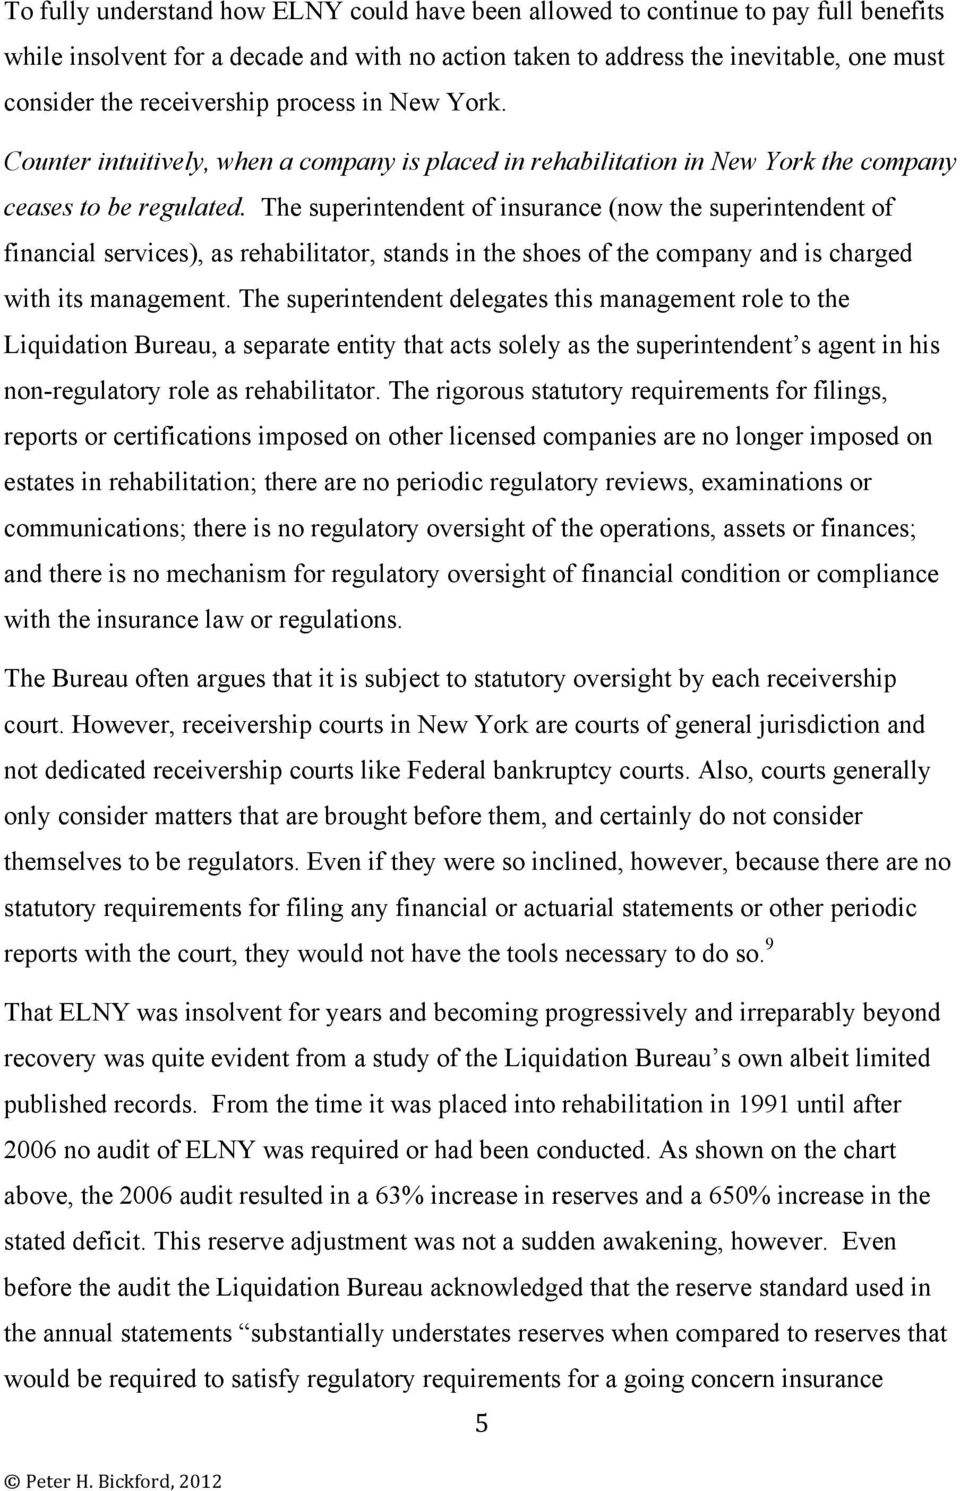 The superintendent of insurance (now the superintendent of financial services), as rehabilitator, stands in the shoes of the company and is charged with its management.